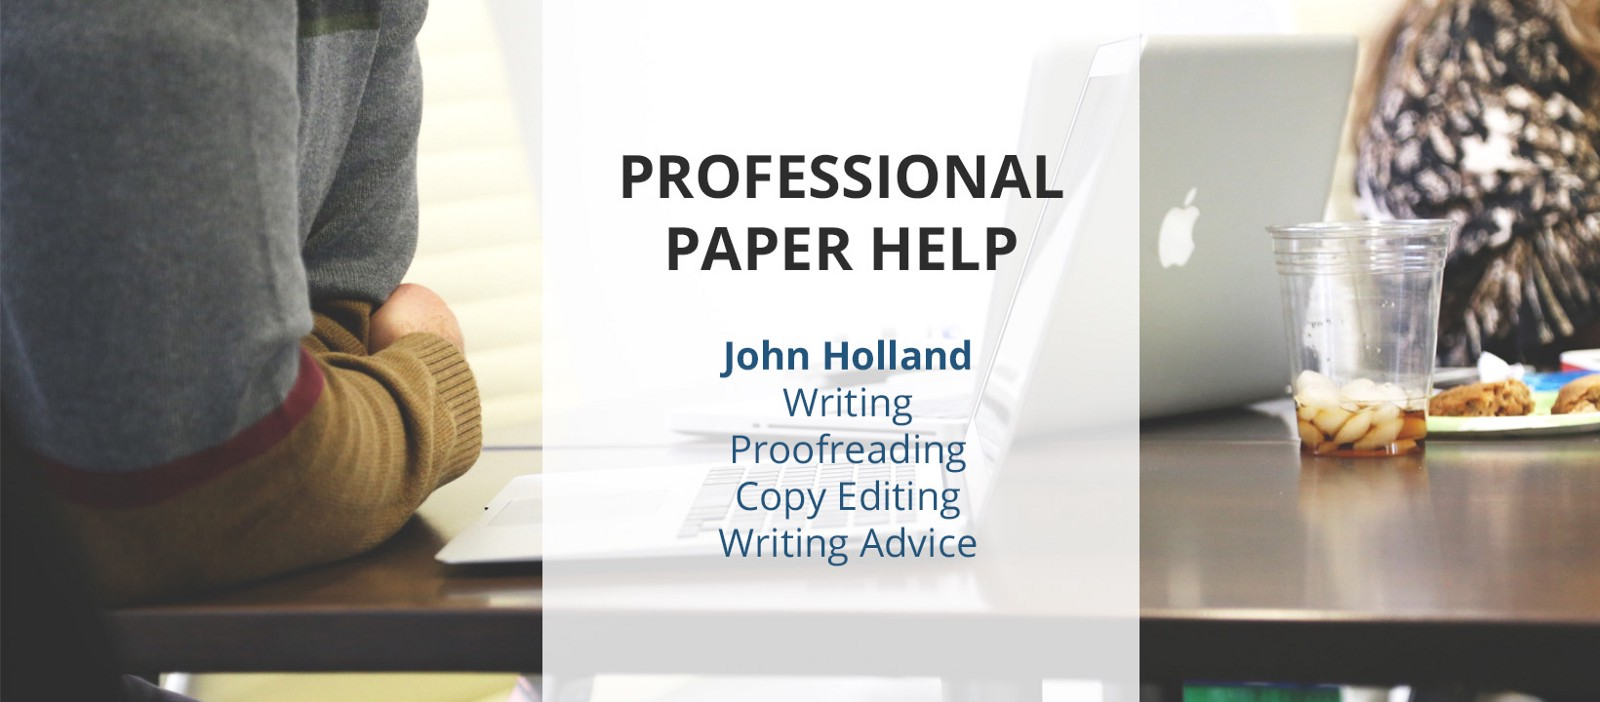 Graduating High School Essay  English Class Reflection Essay also Apa Sample Essay Paper Create An Impressive Argumentative Essay To Convince Your Audience Protein Synthesis Essay